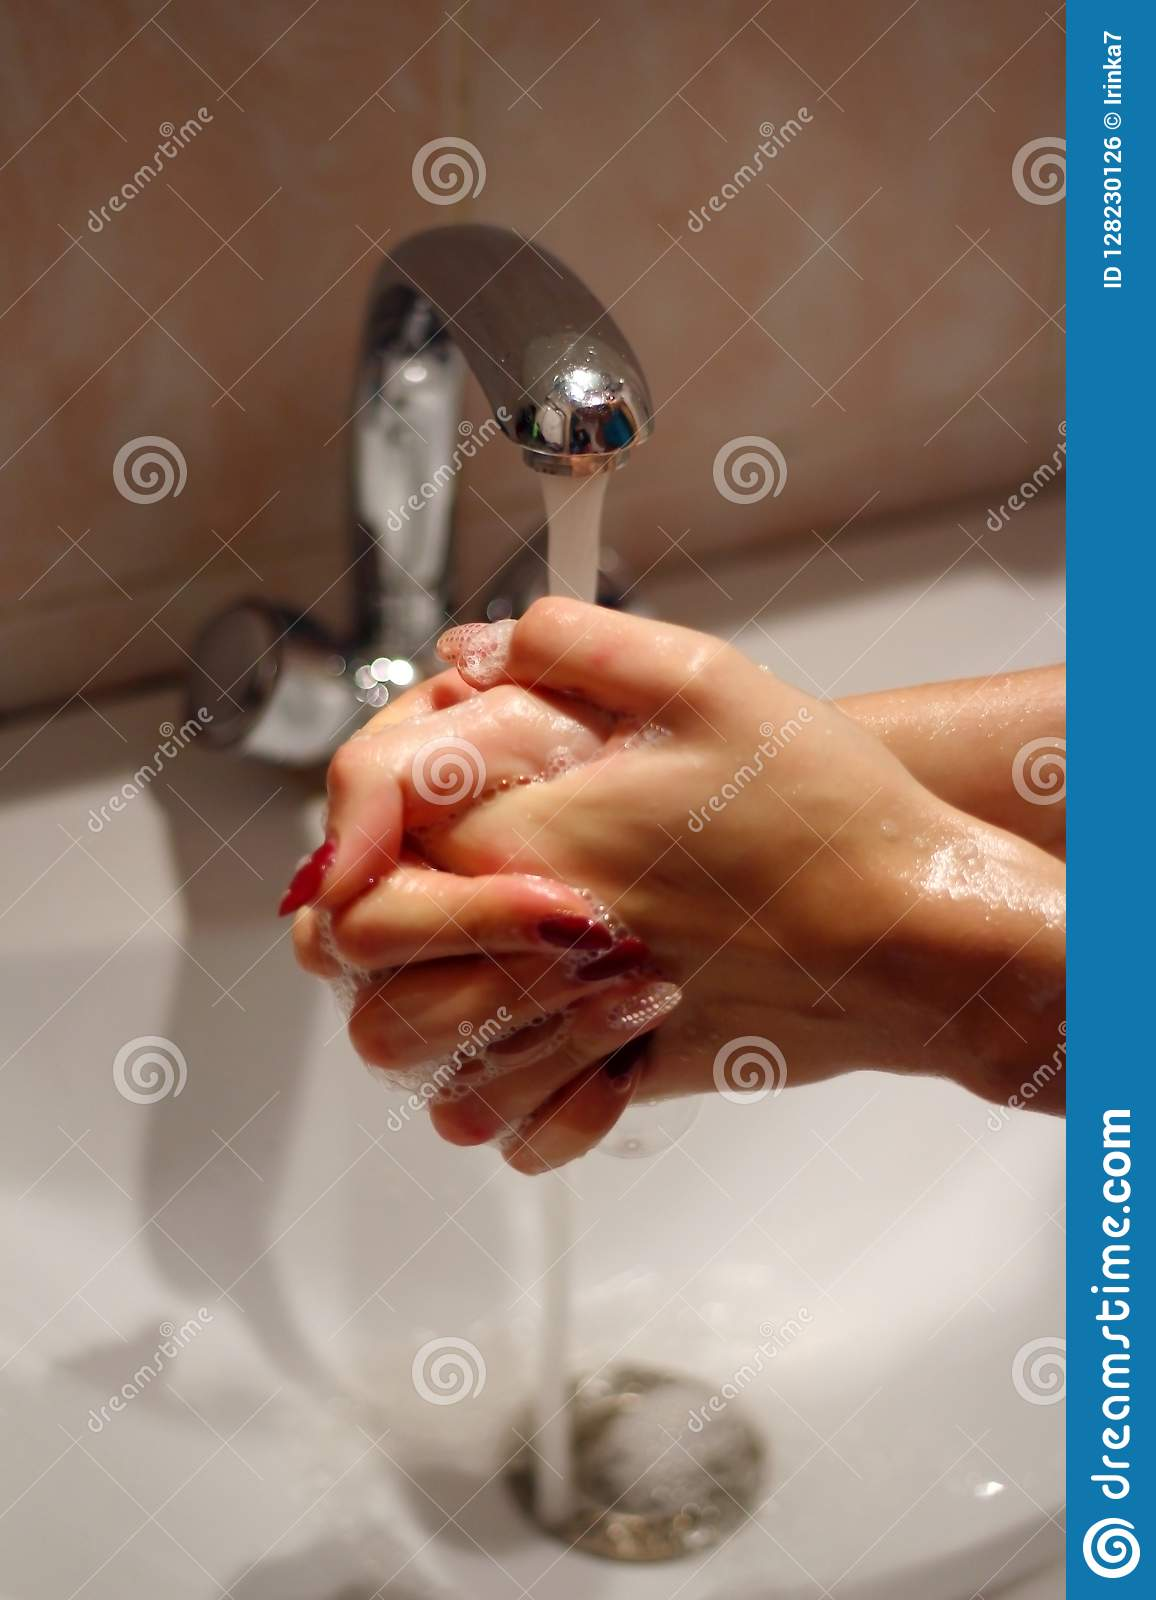 Girl washes her hands with soap under running water